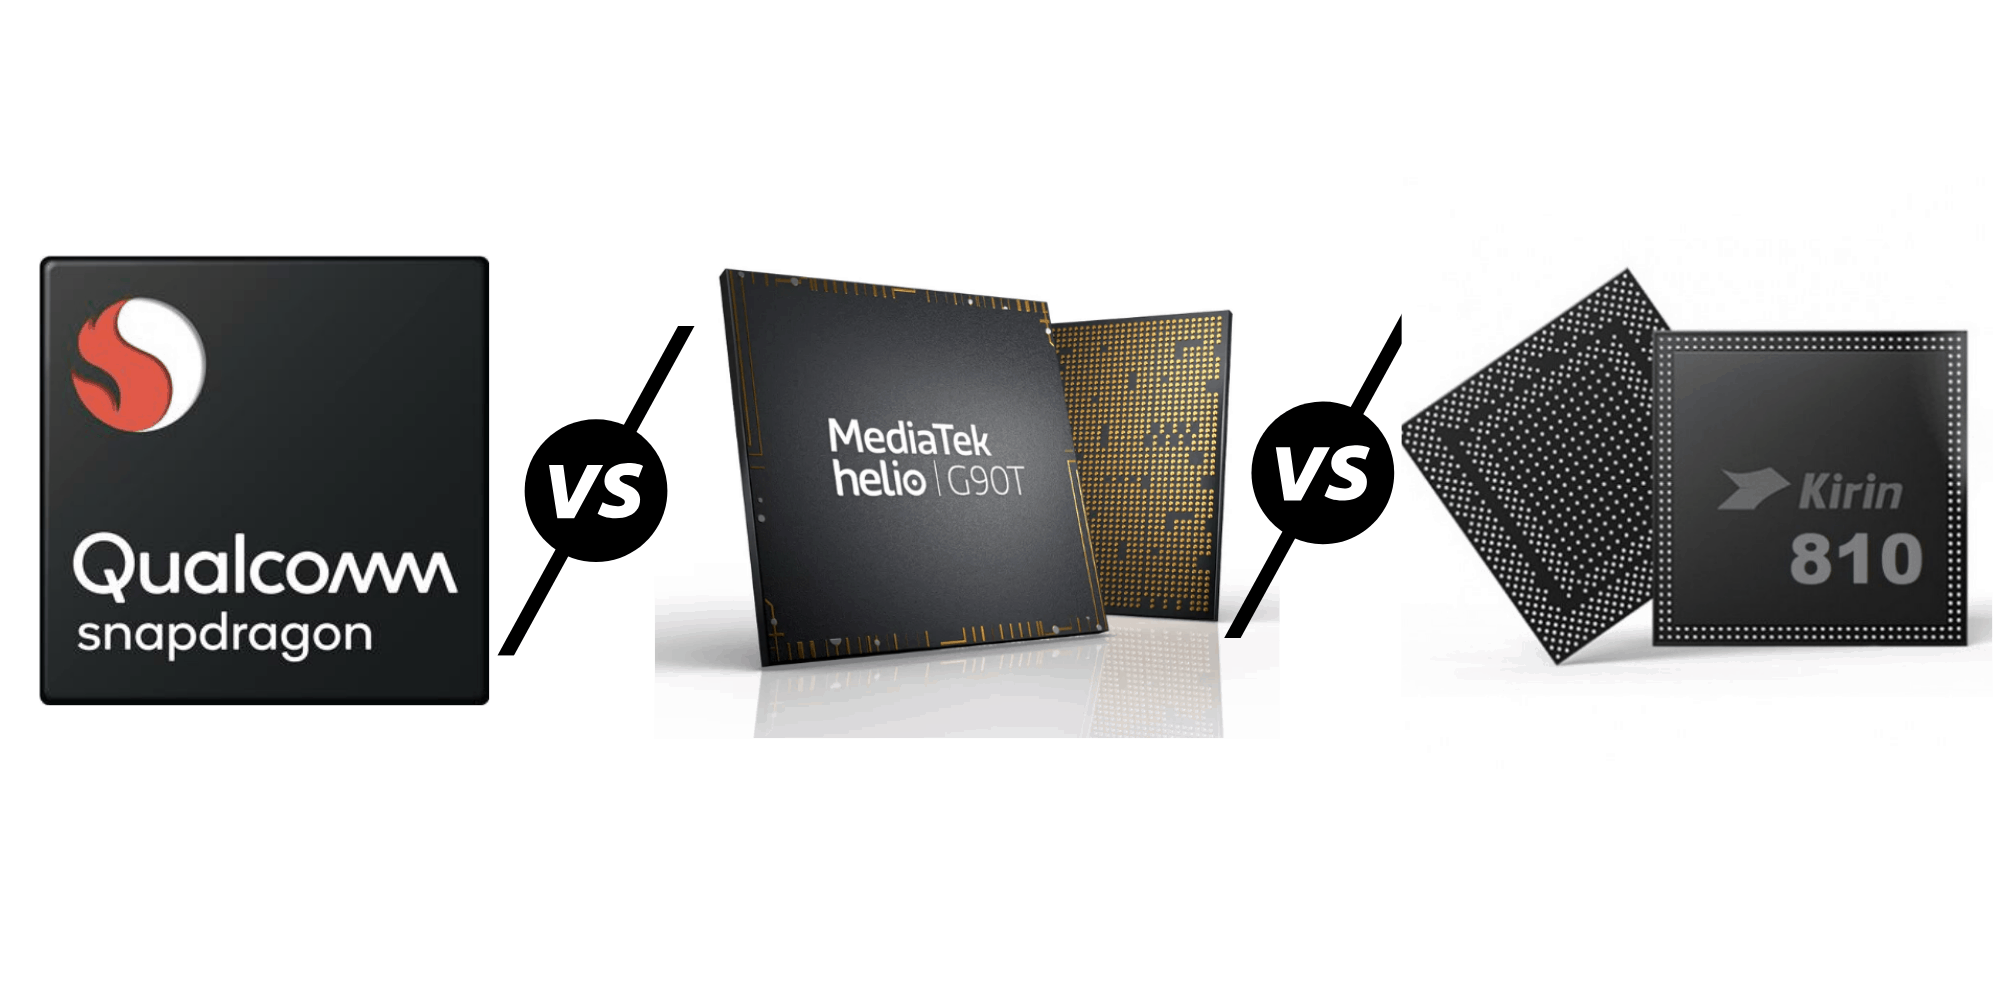 Qualcomm Snapdragon 845 vs Snapdragon 730 vs MediaTek Helio G90T vs HiSilicon Kirin 810 – How does last years flagship compare to this years upper mid-range chipsets?